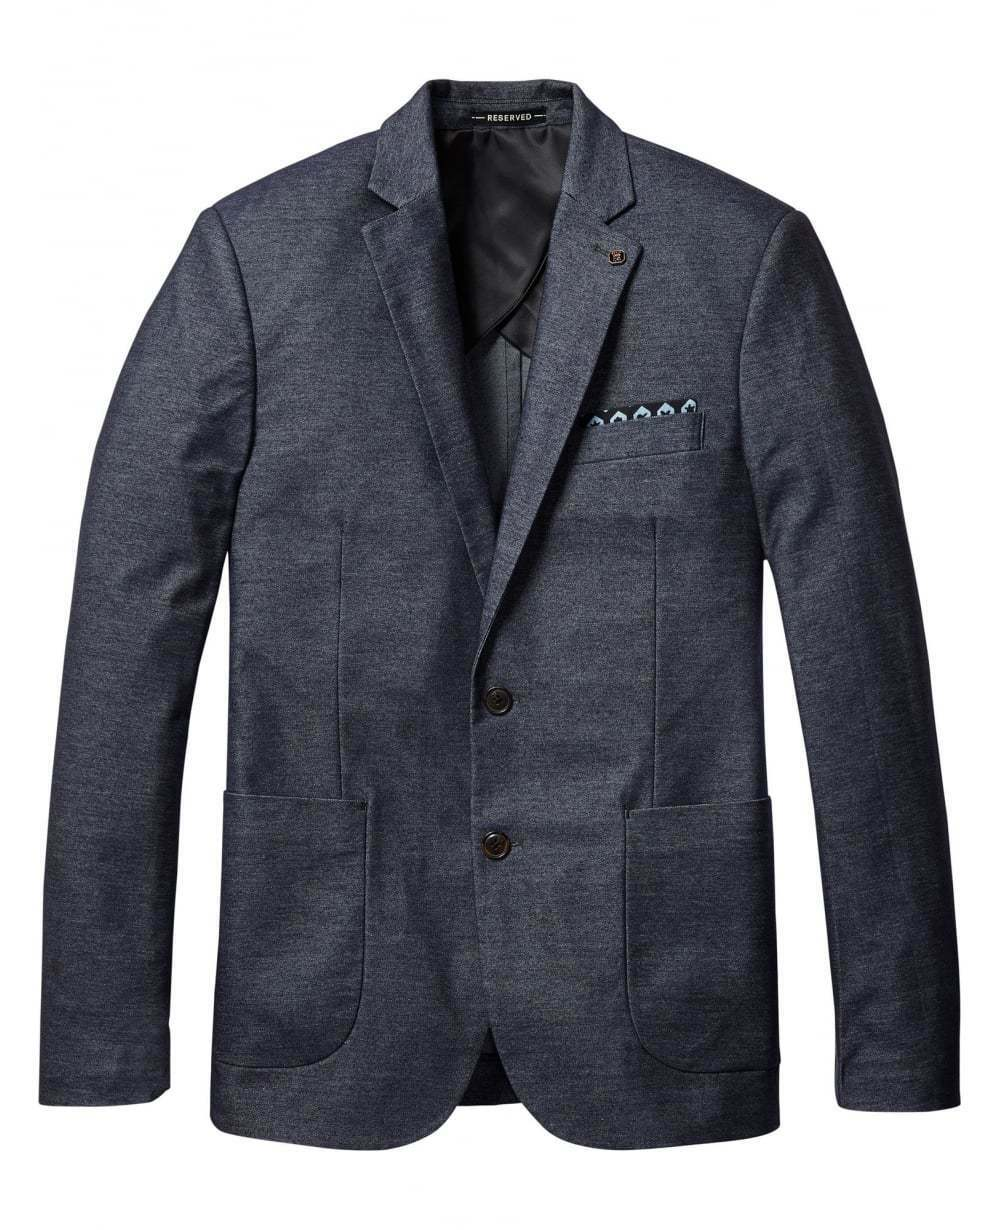 SCOTCH & SODA Classic Knitted Blazer-  INDIGO - Smart Casual Wear - FREE P + P